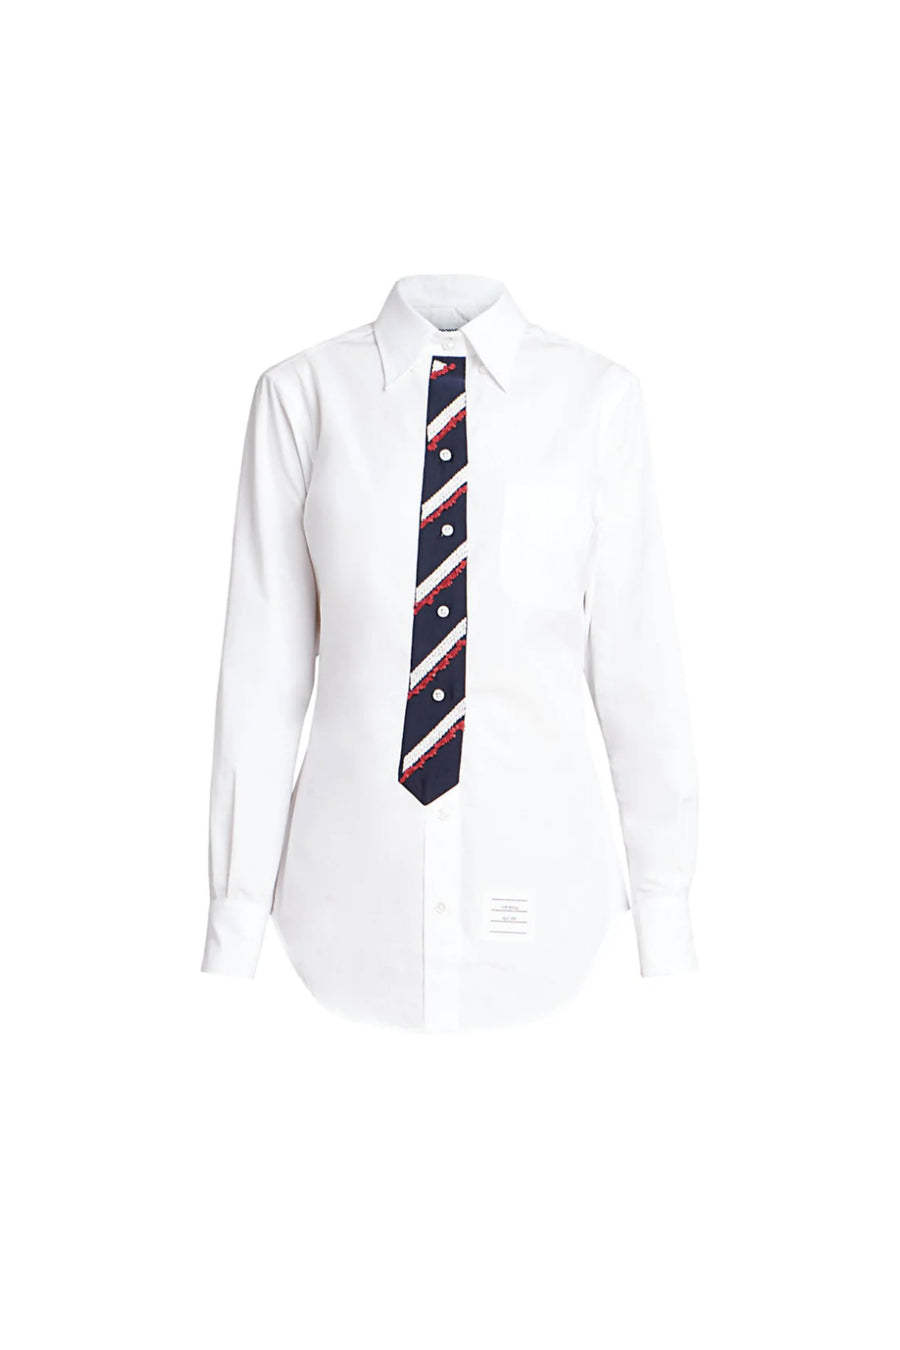 Classic Button Down Point Collar Shirt with Trompe L'oeil Necktie in White